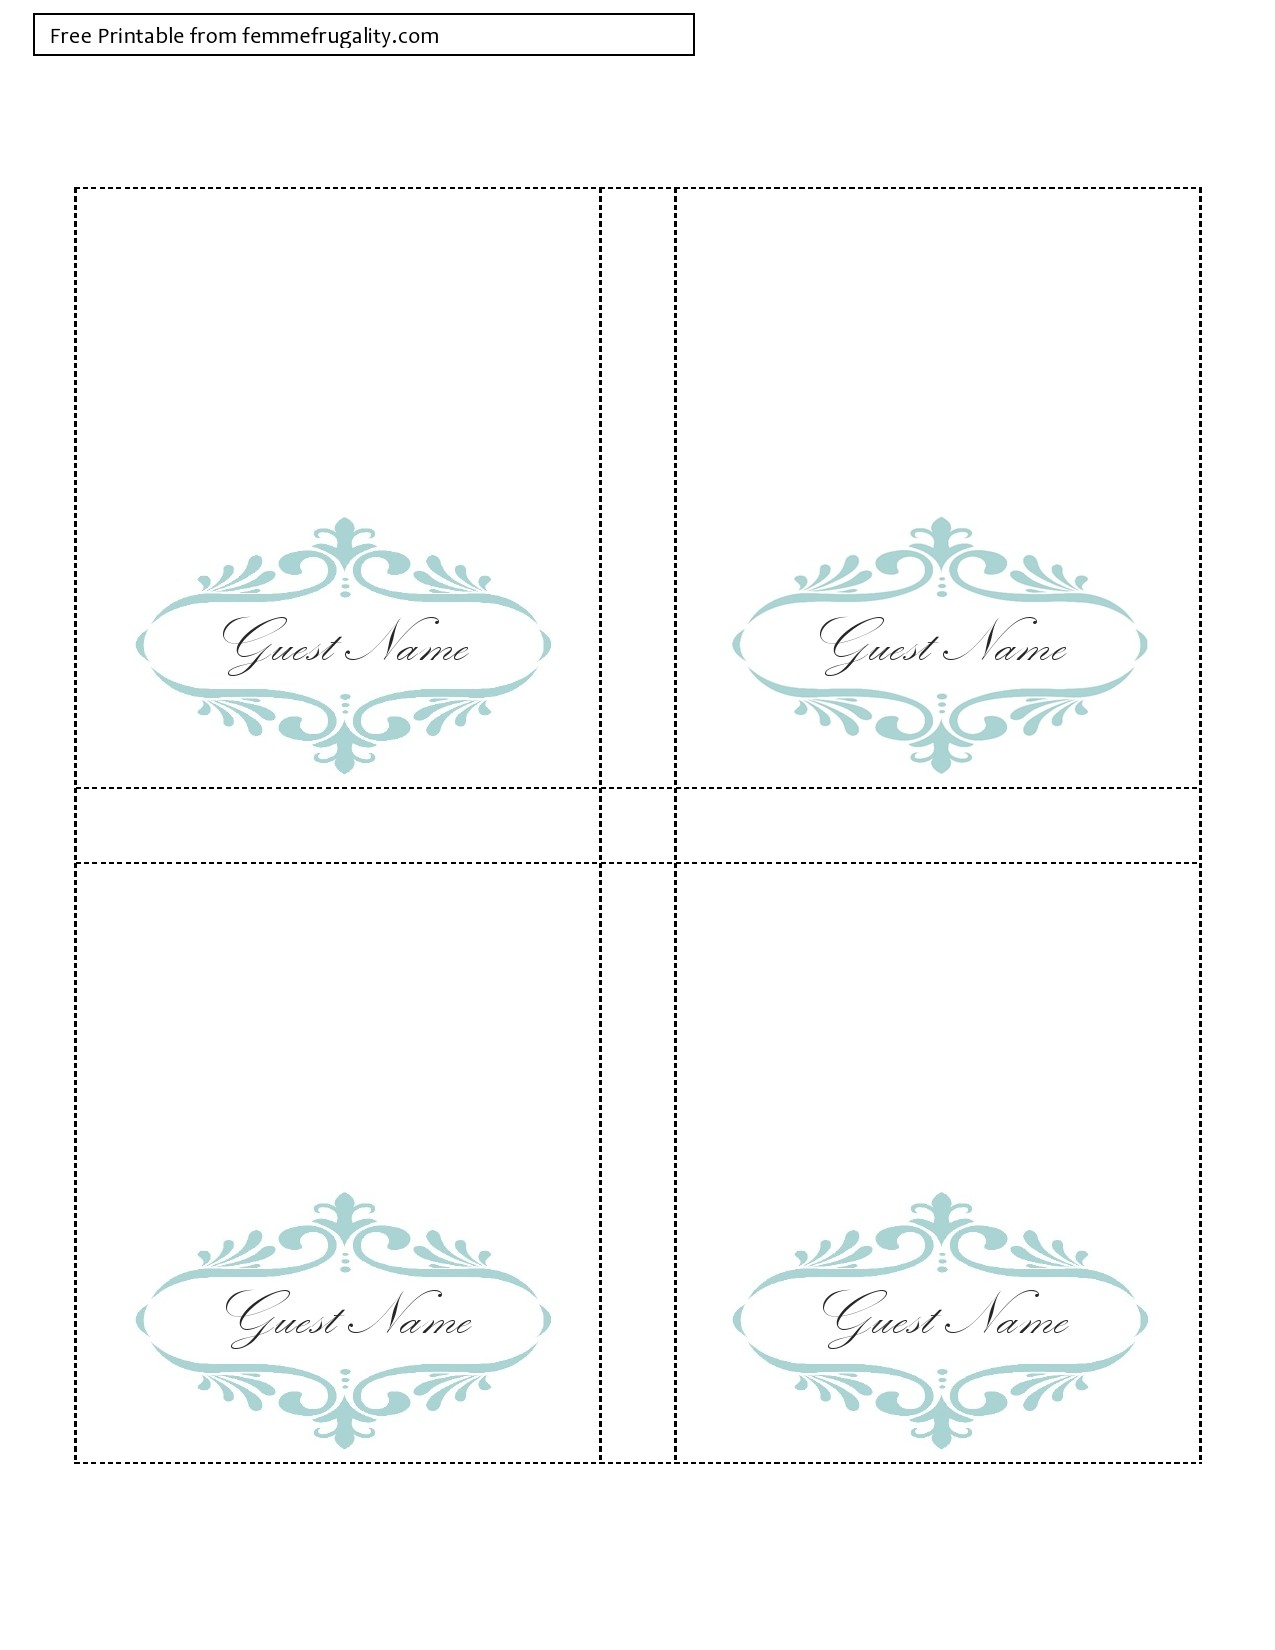 Free place card template 04